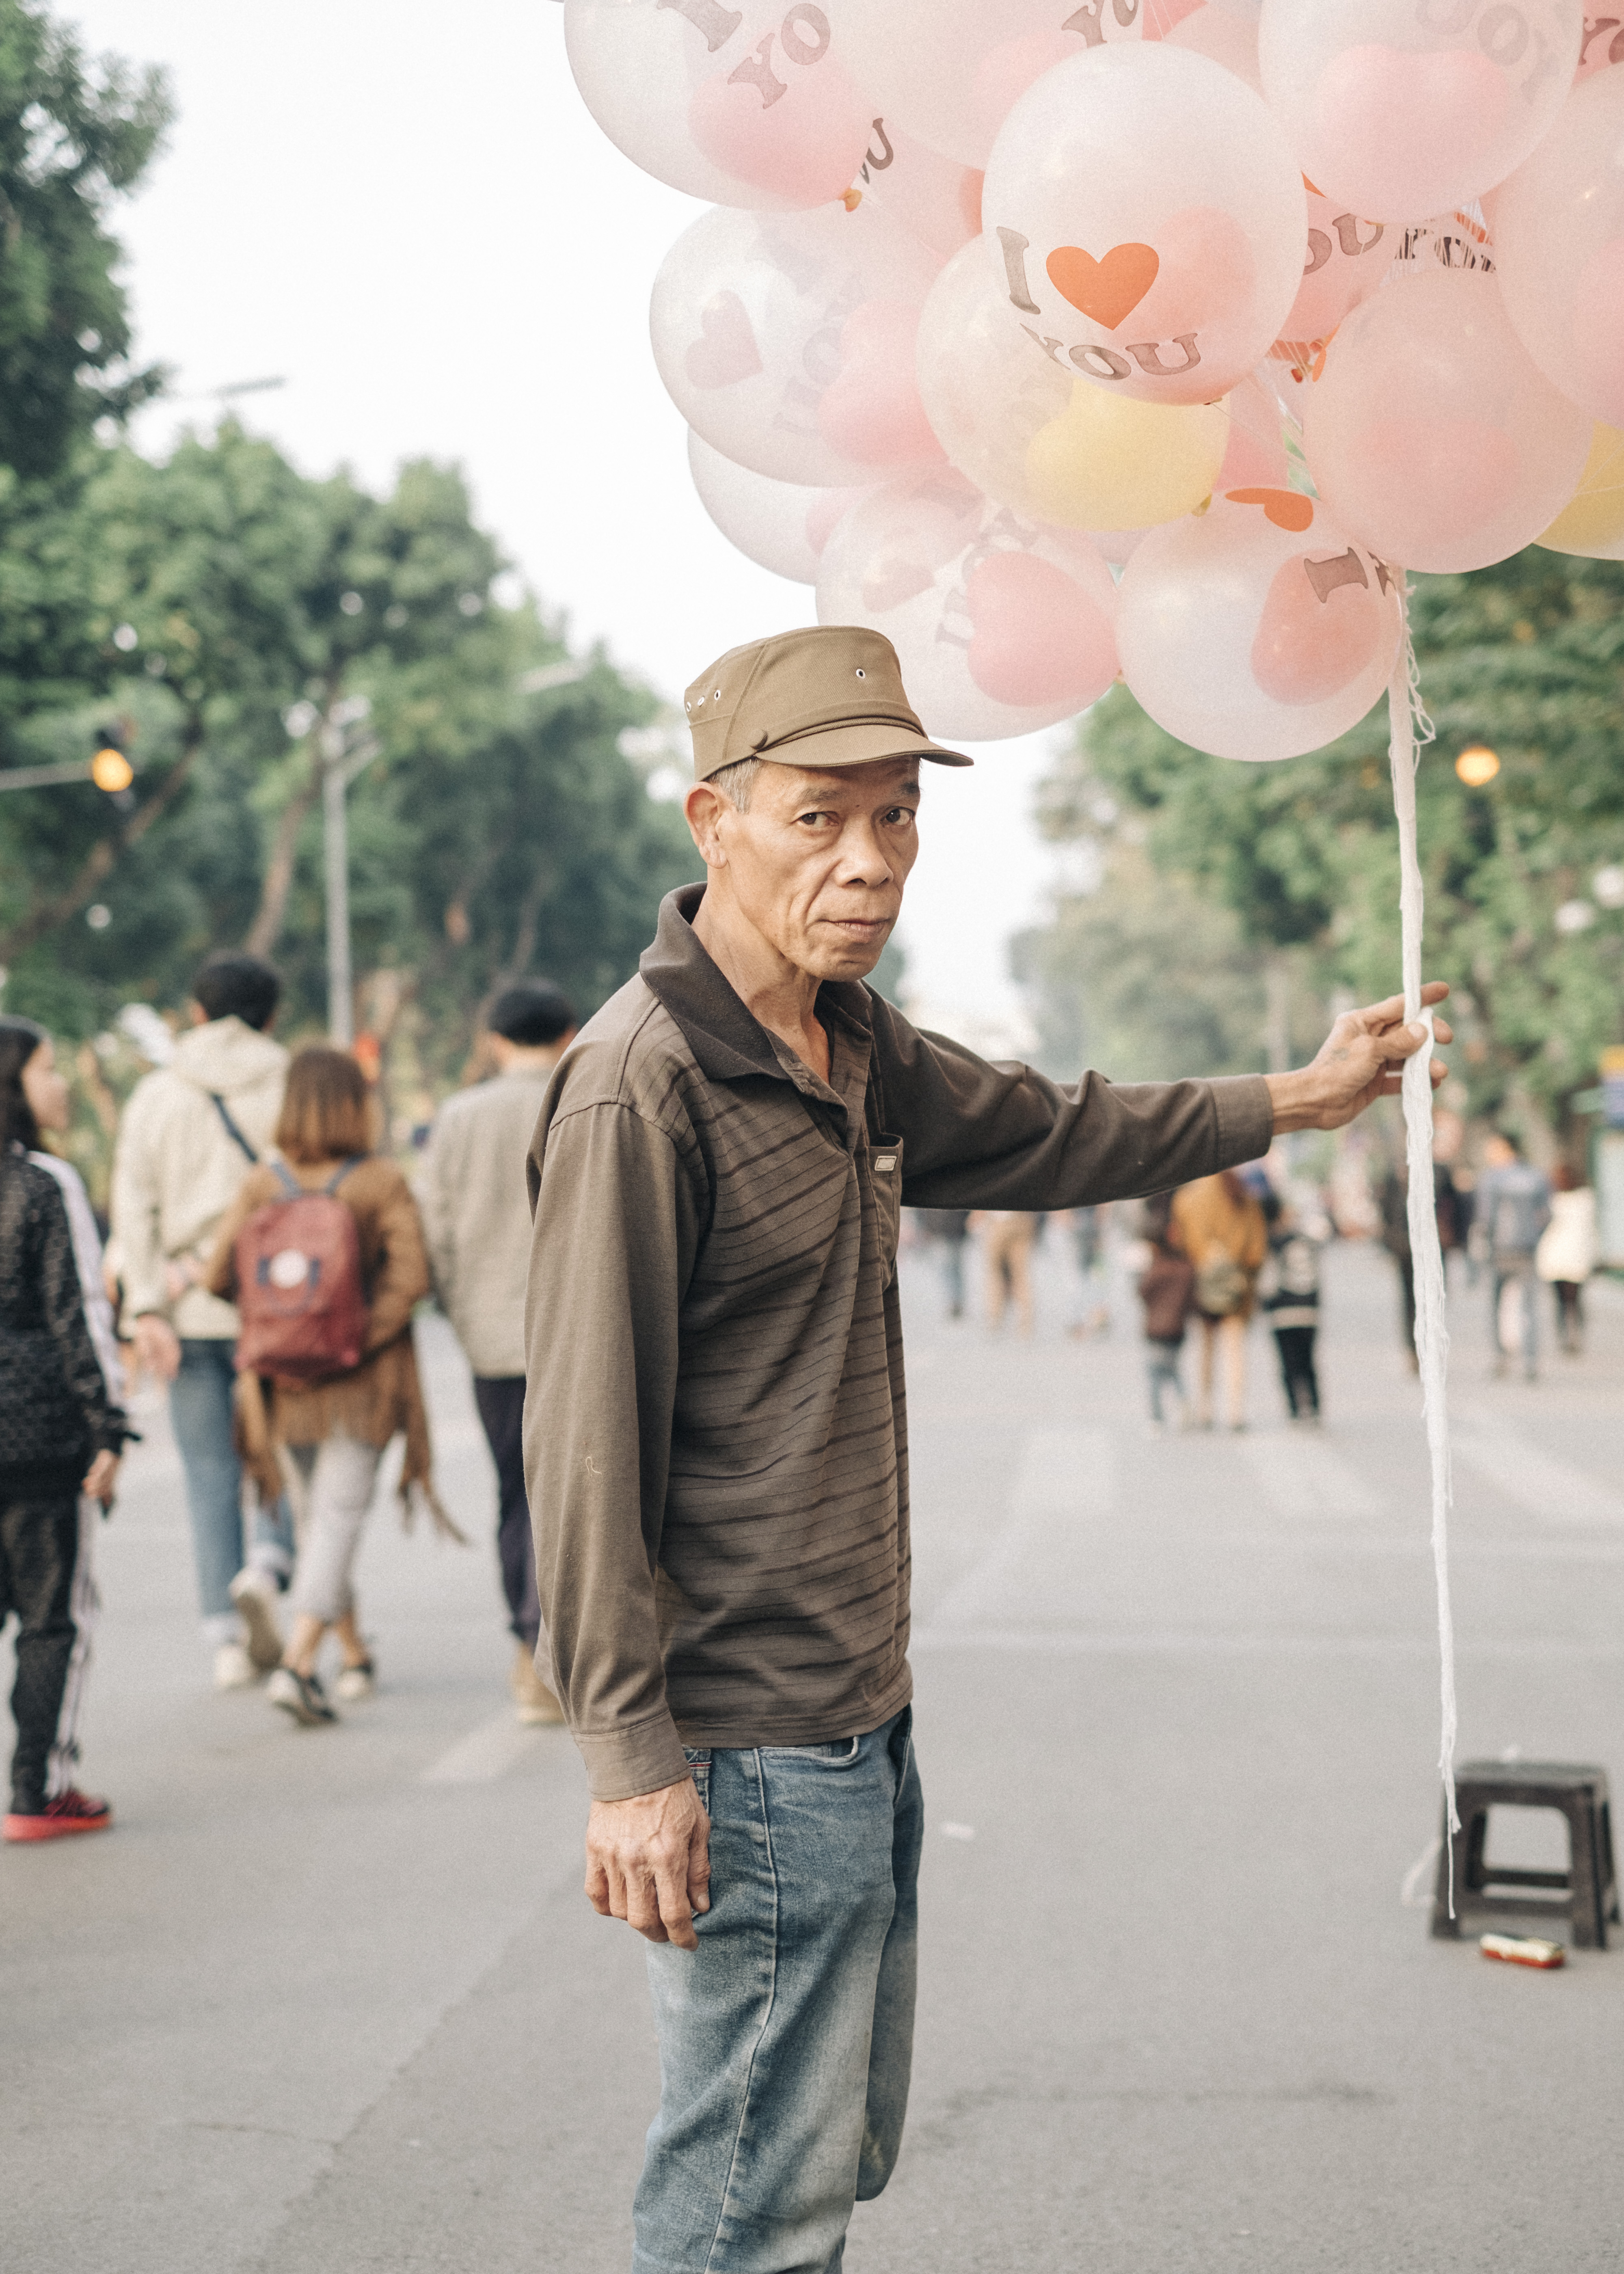 Vietnam, Hanoi, A man selling love ballons near Hoam Kiem Lake, The picture is part of the project Single Women in Vietnam, 22.01.2017, (c) Alina Emrich